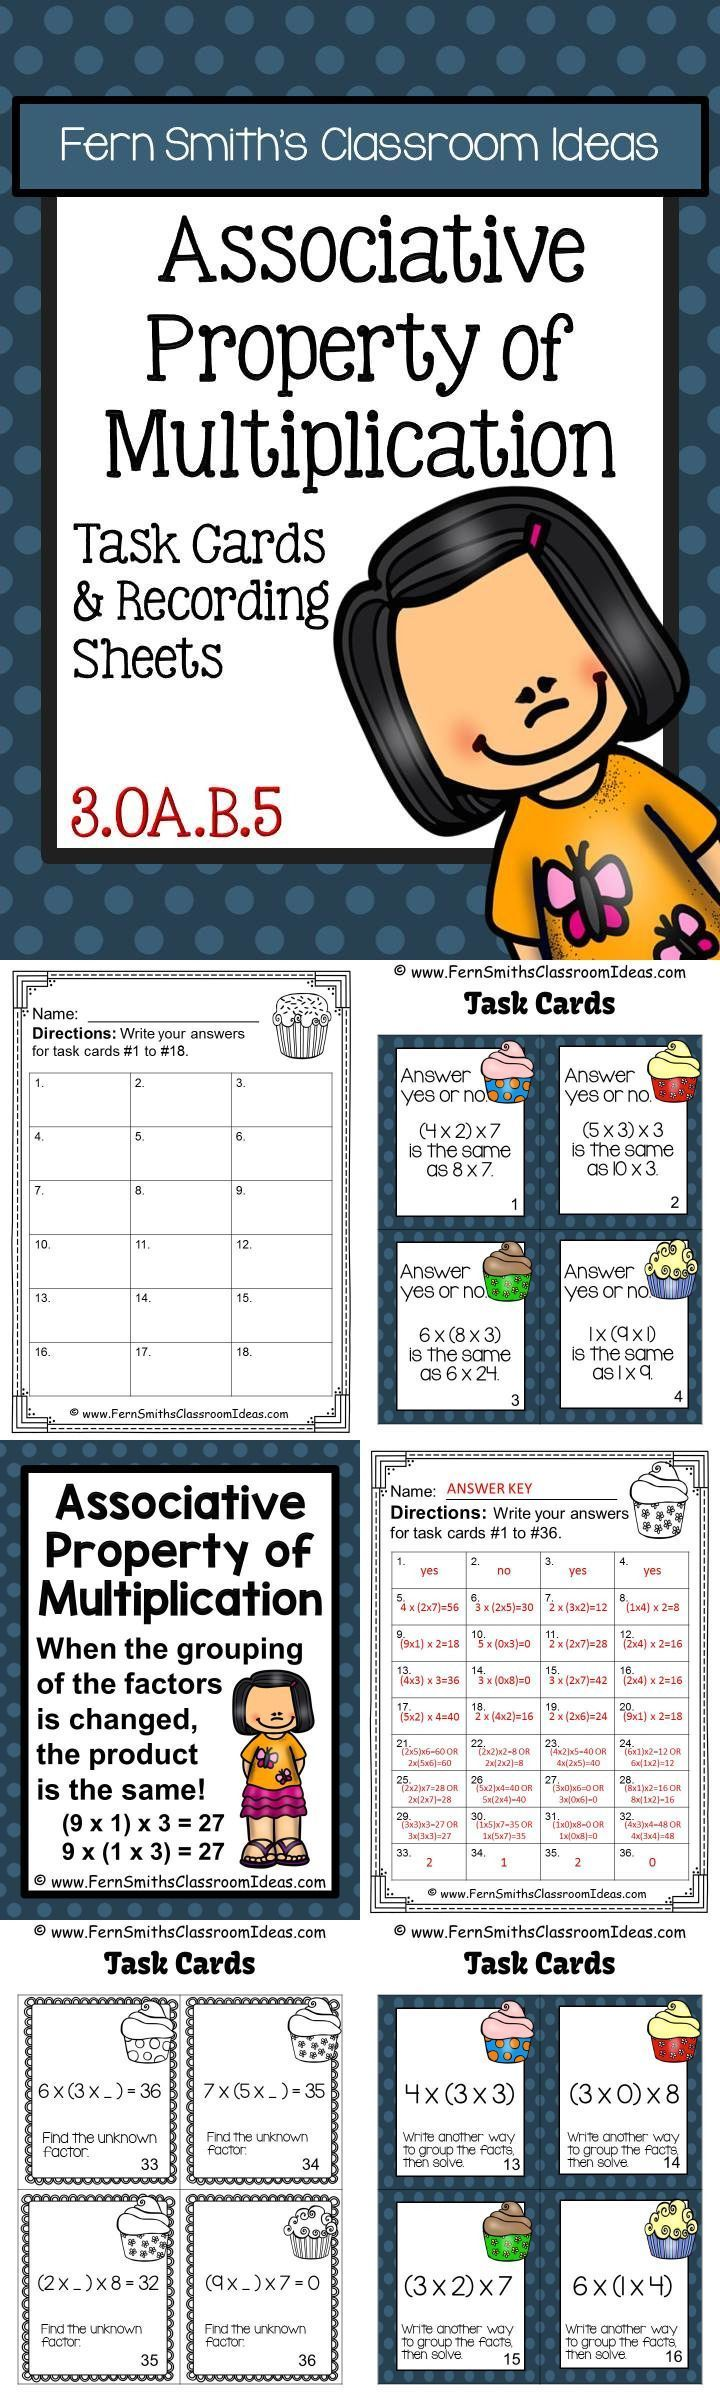 worksheet Associative Property Of Multiplication Worksheets 1000 ideas about associative property on pinterest distributive free preview has four task cards of multiplication cards